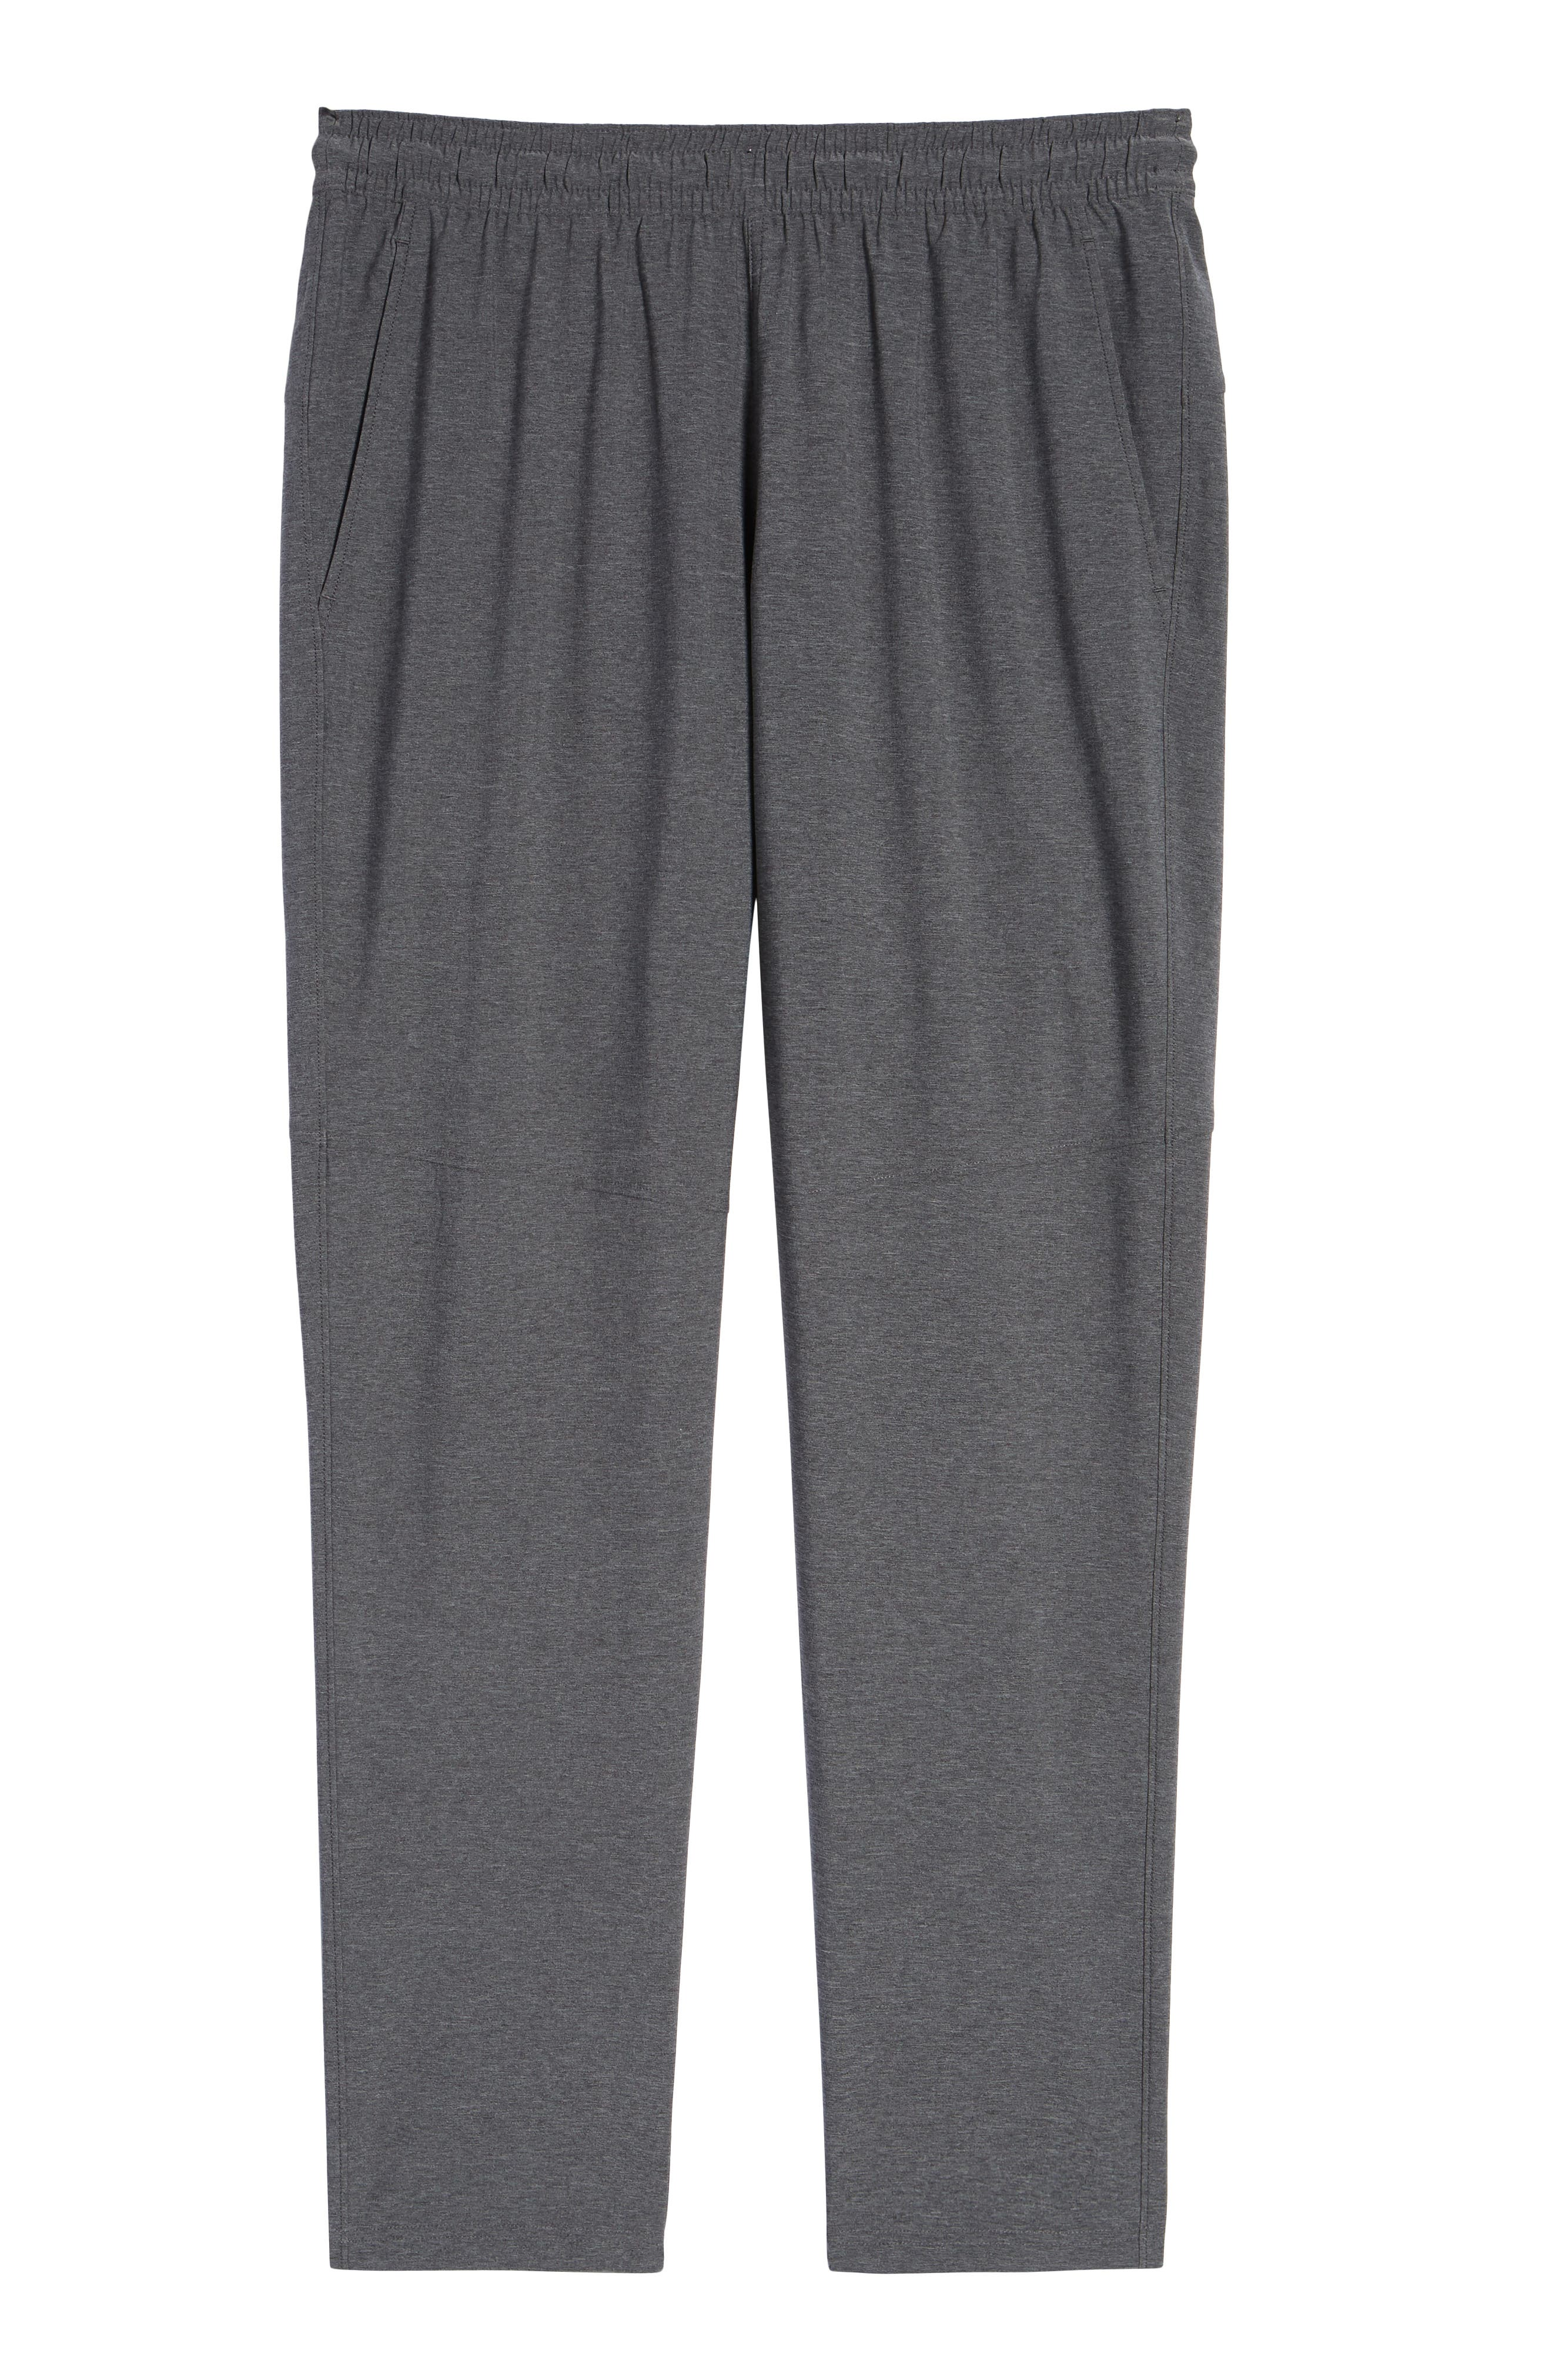 ZELLA, Tapered Stretch Track Pants, Alternate thumbnail 7, color, GREY OBSIDIAN MELANGE